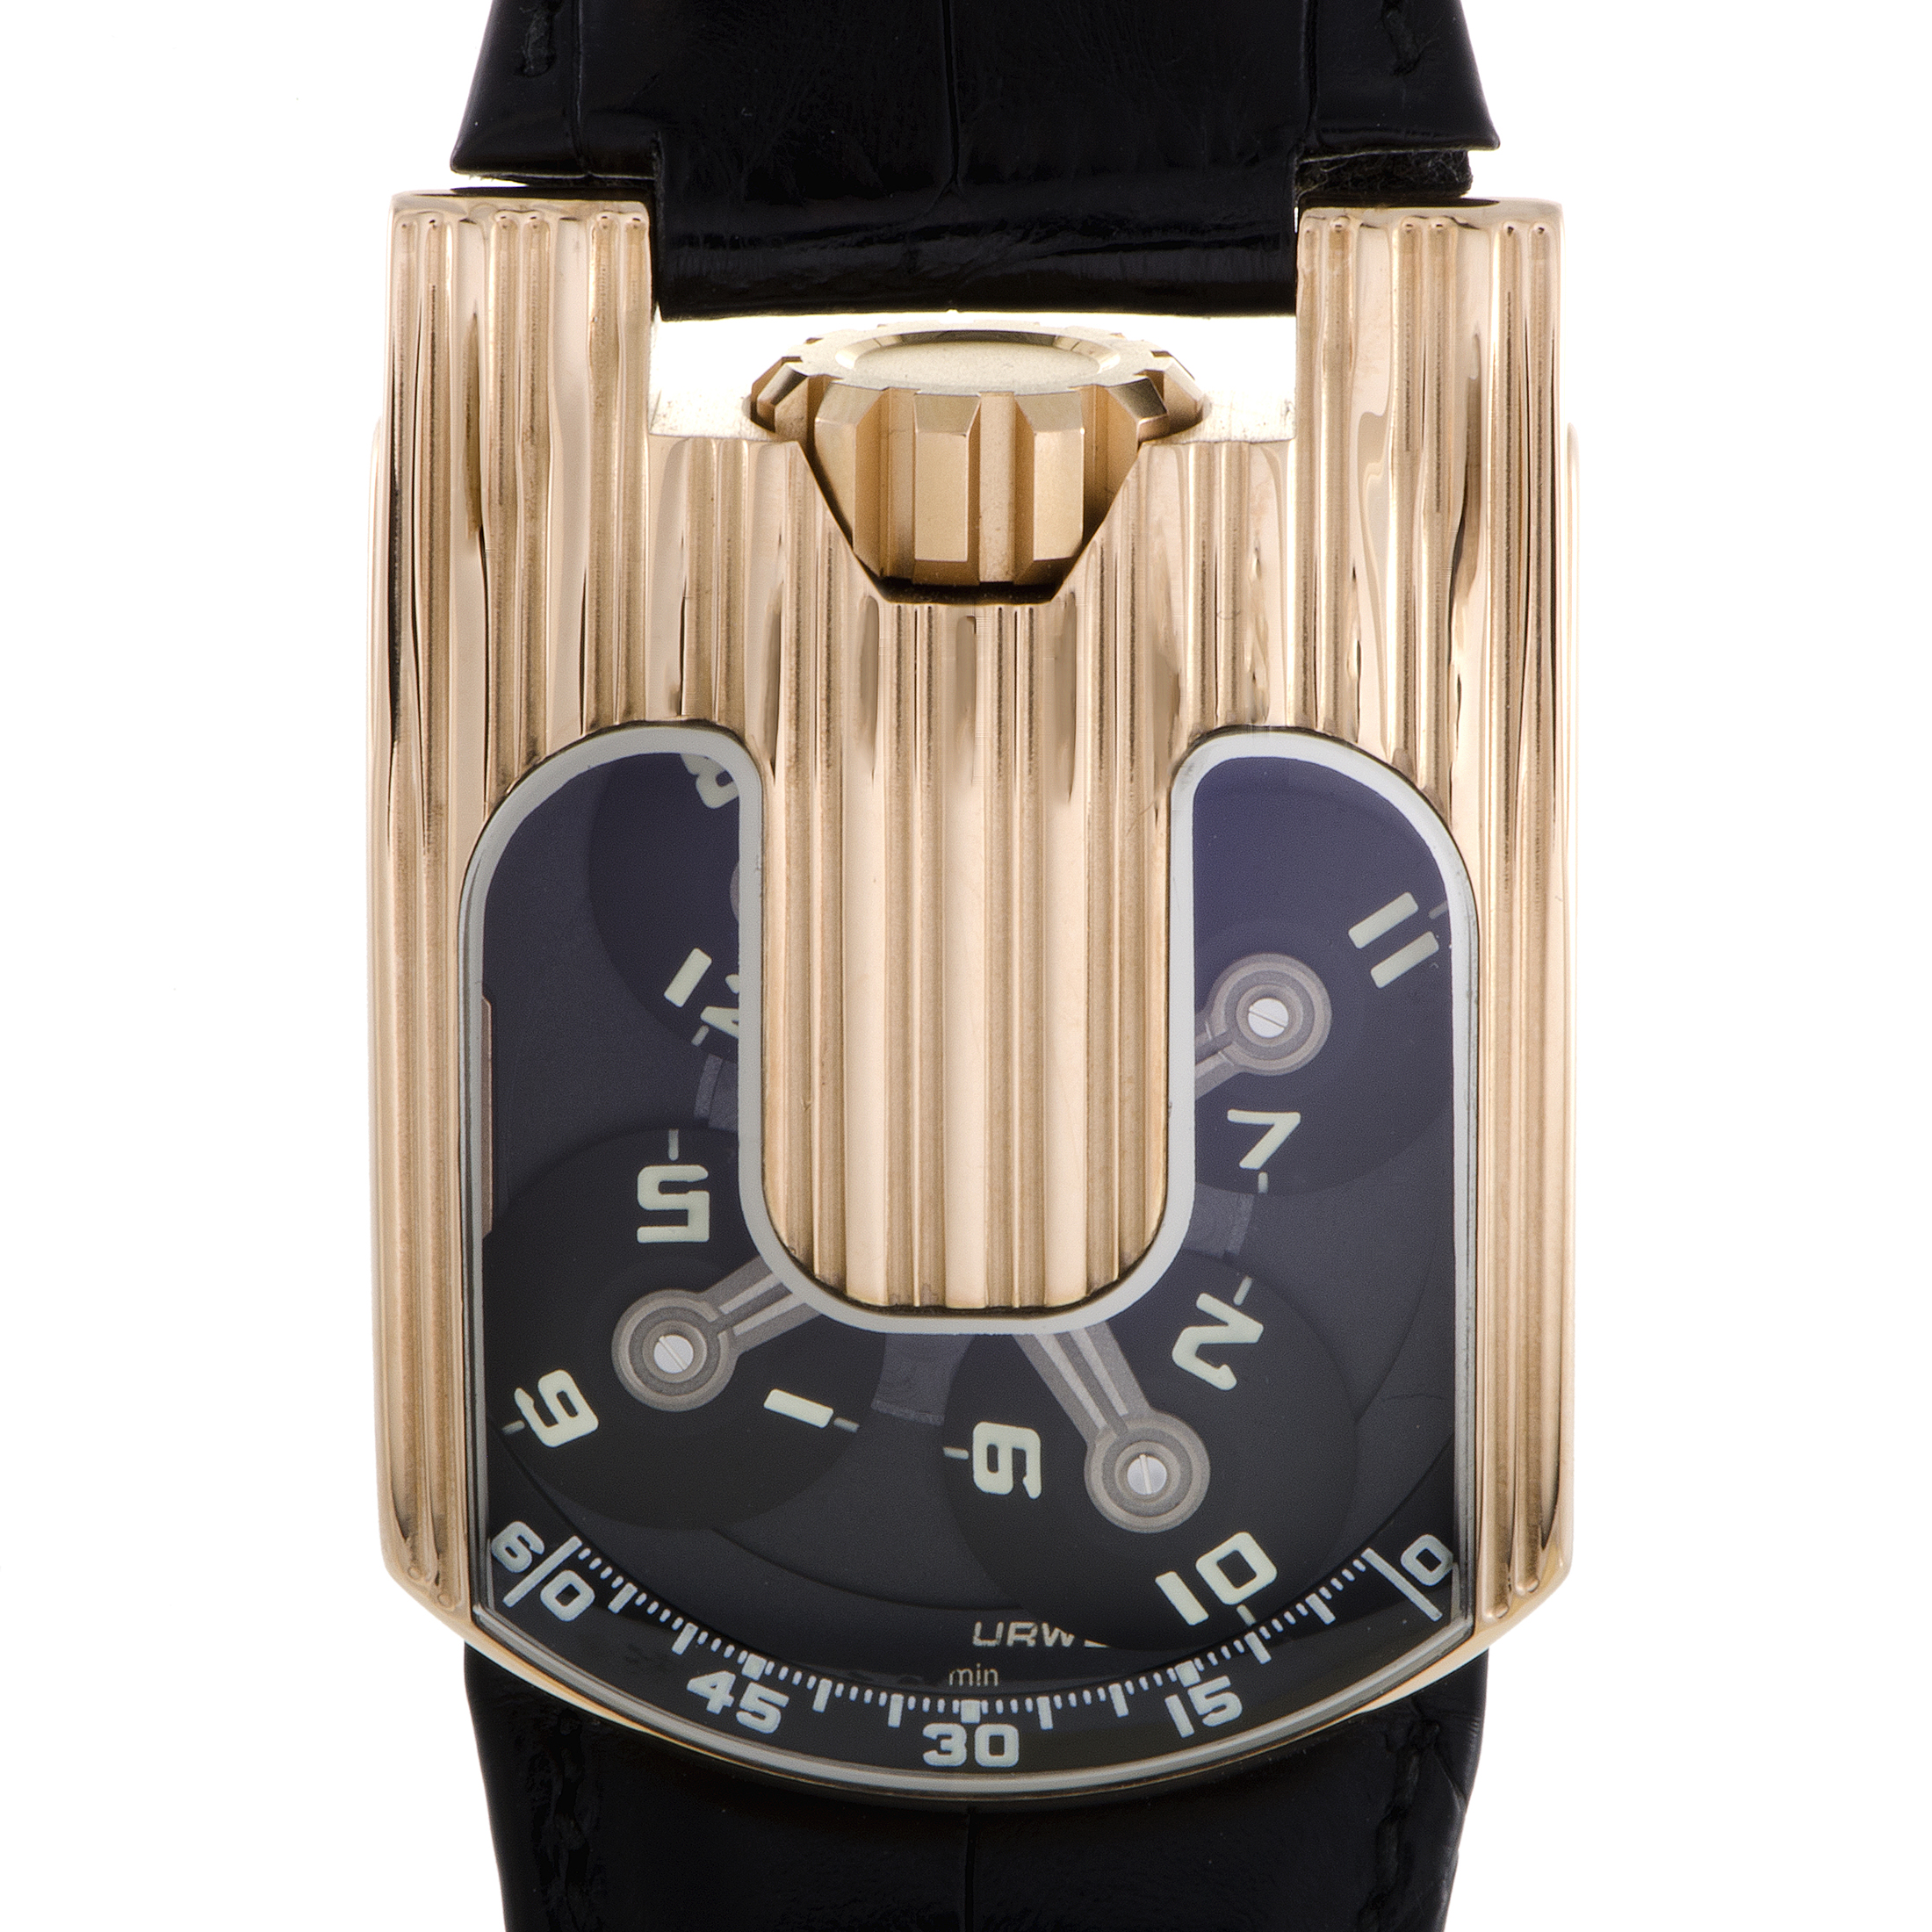 Wrist watch price in oman - Ur 103 09 Mens Manually Wound Watch 103 09 Rg